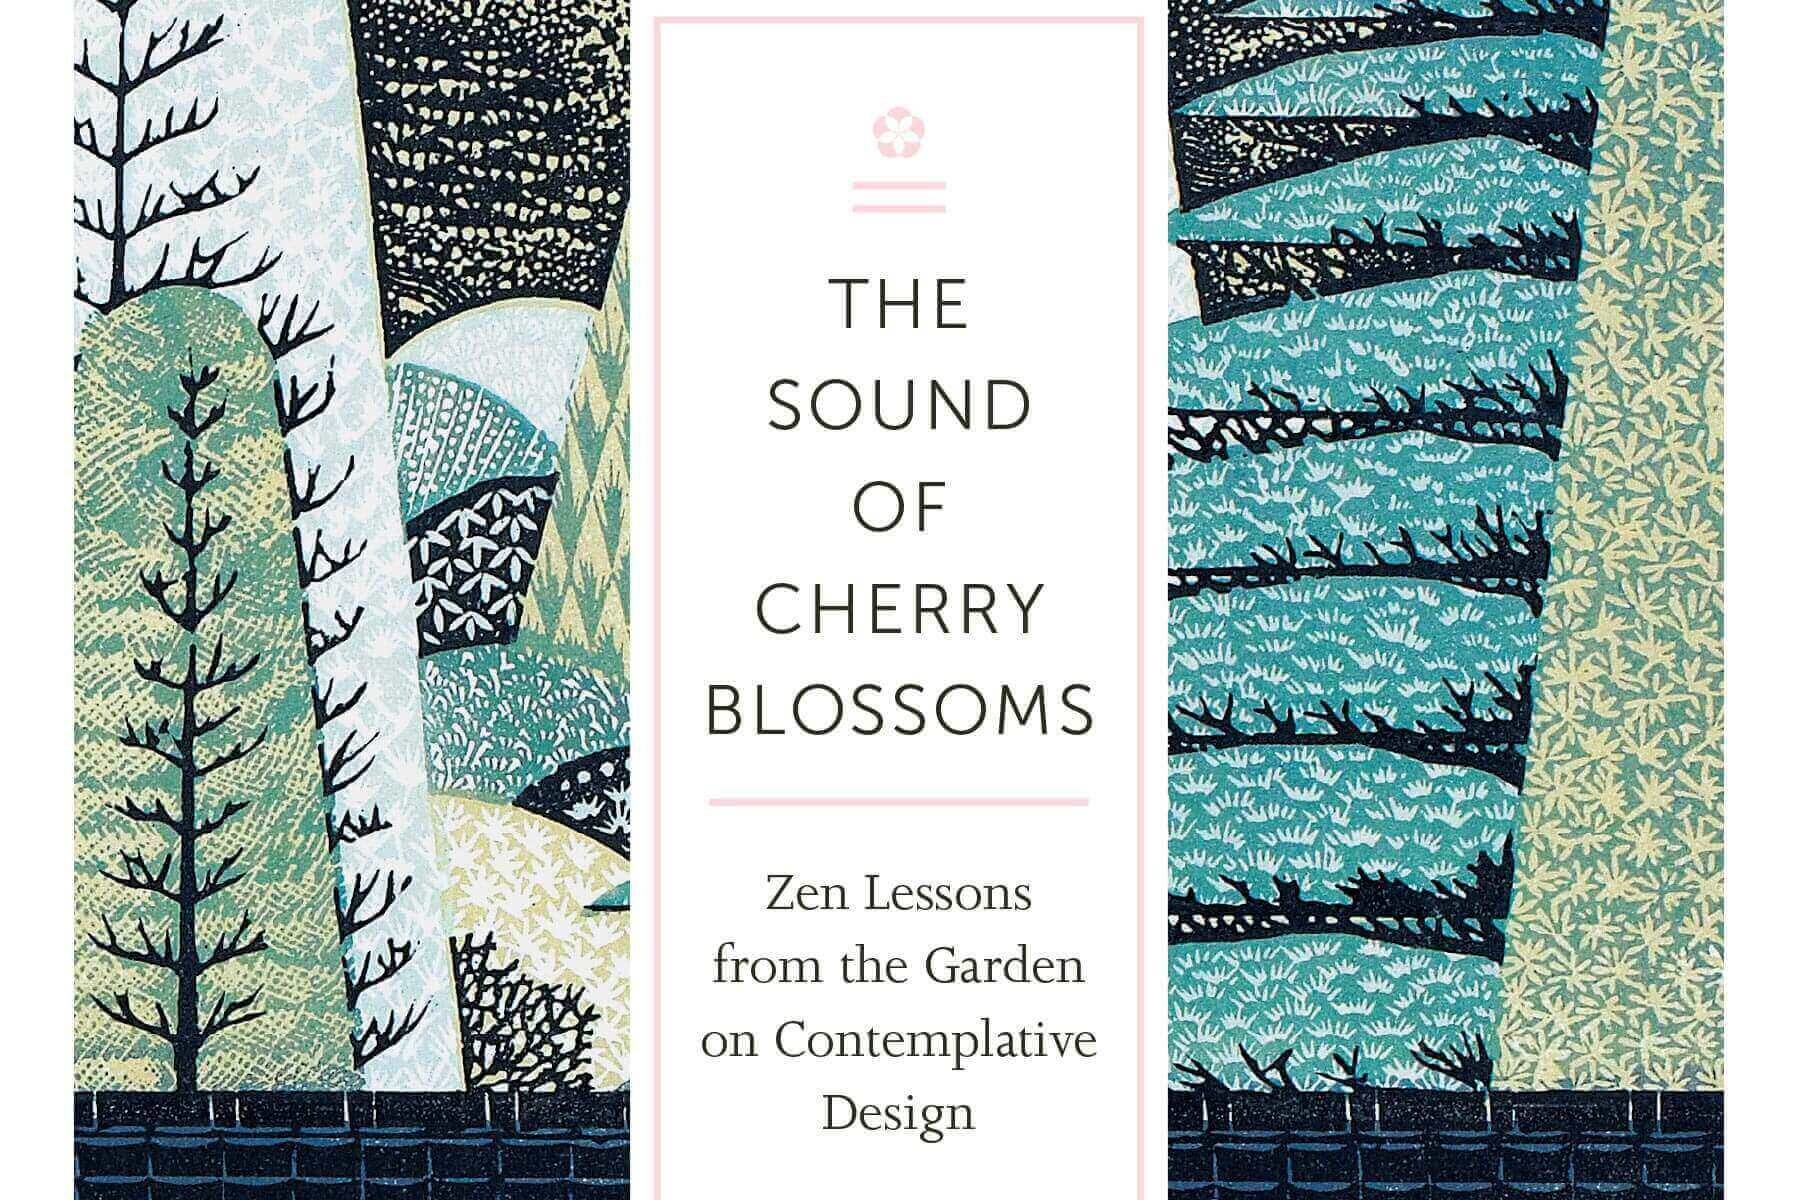 The View | An Excerpt from The Sound of Cherry Blossoms